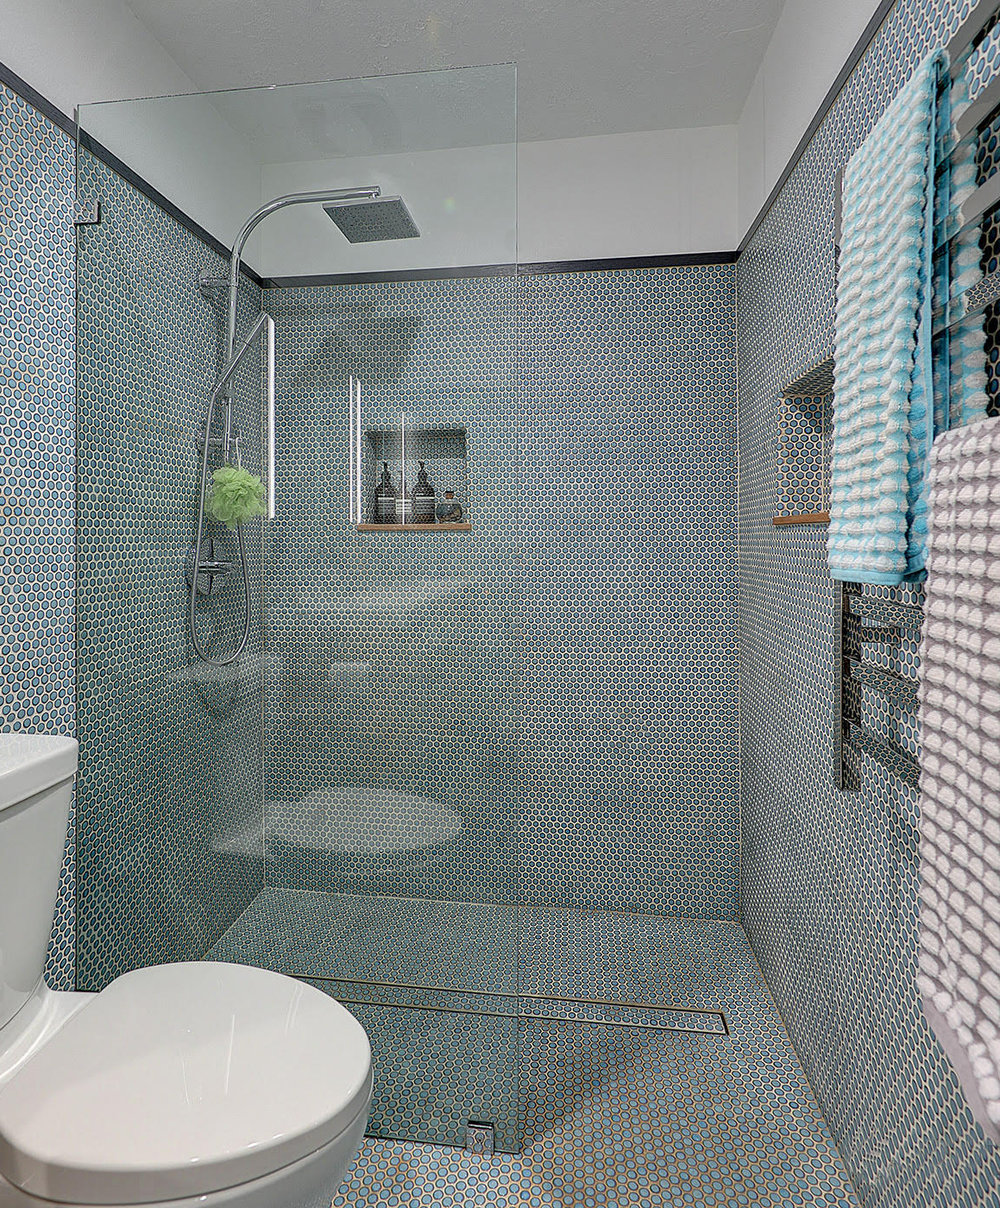 a modern bathroom design using penny tile on the floors and wall.